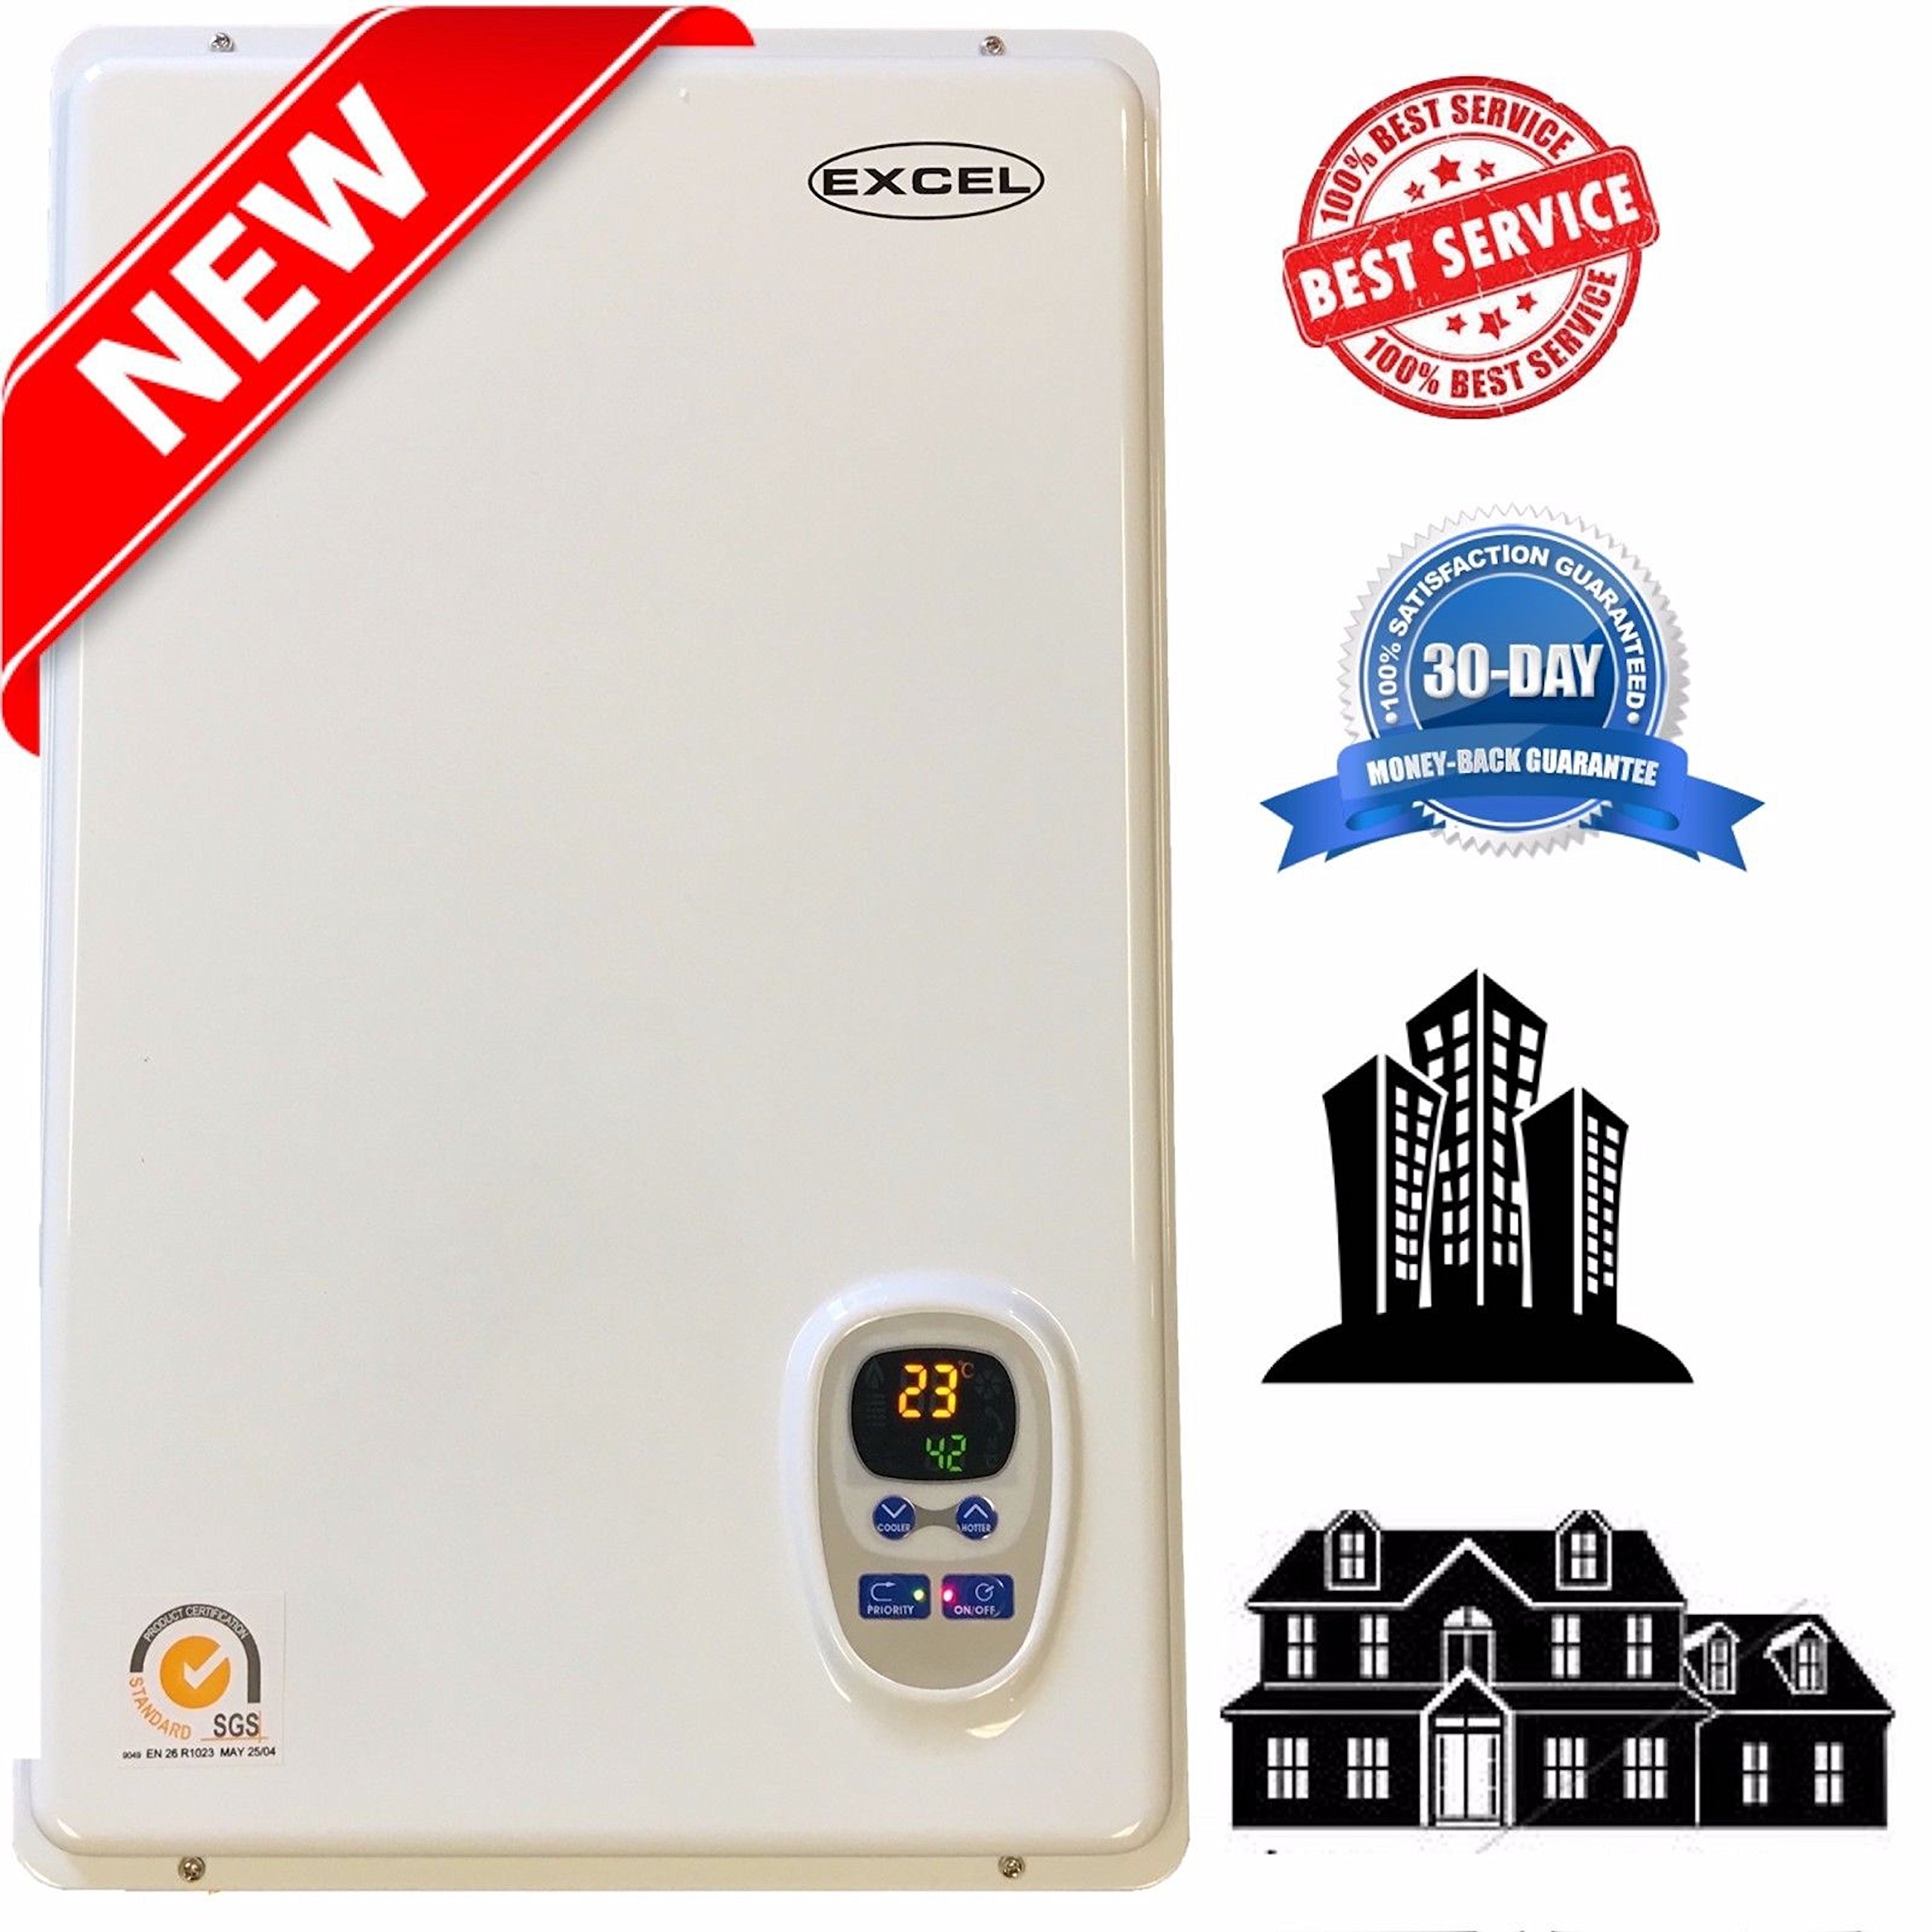 Tankless Gas Water Heater Excel Pro NATURAL GAS 6.6 GPM Whole House and for Hydronic heating Compare to Rinnai, Rheem ,Noritz, Bosch FREE FLUE KIT by gasFlex